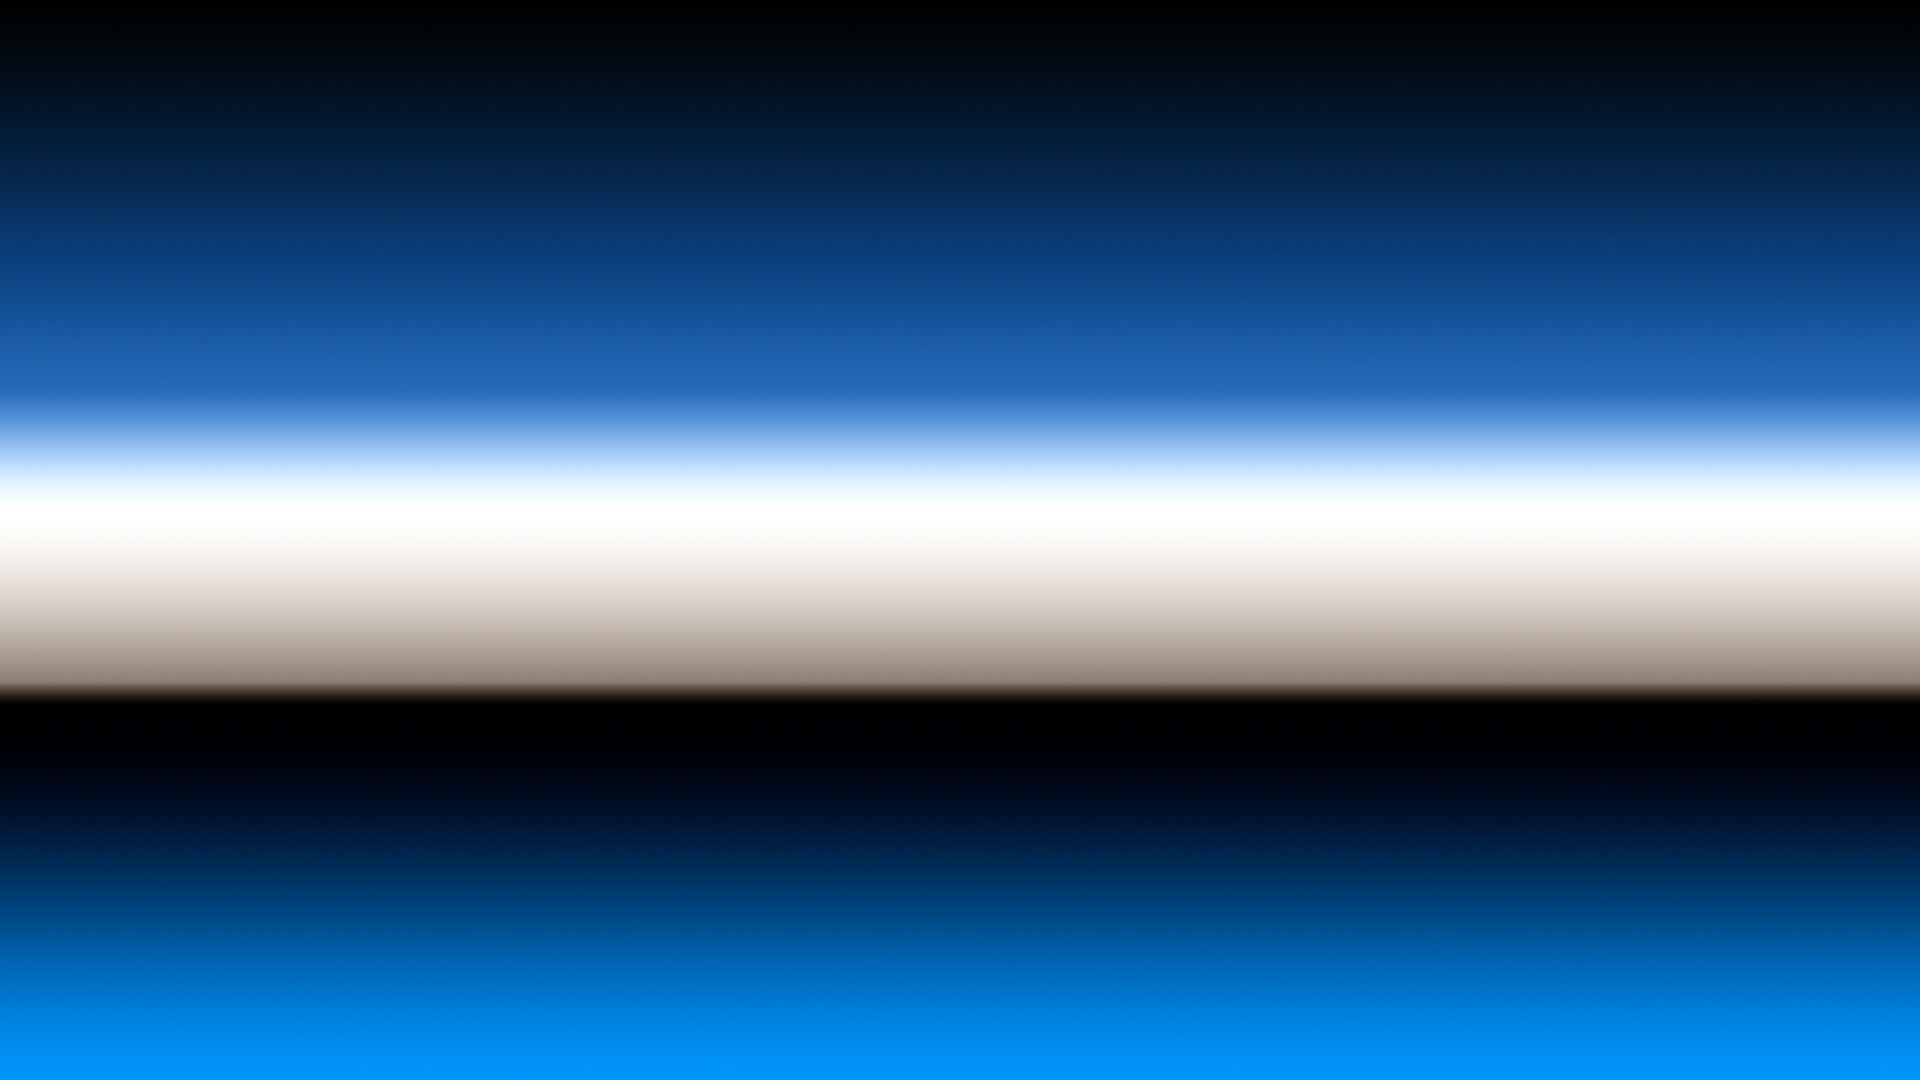 blue and black backgrounds wallpapers wallpapersafari